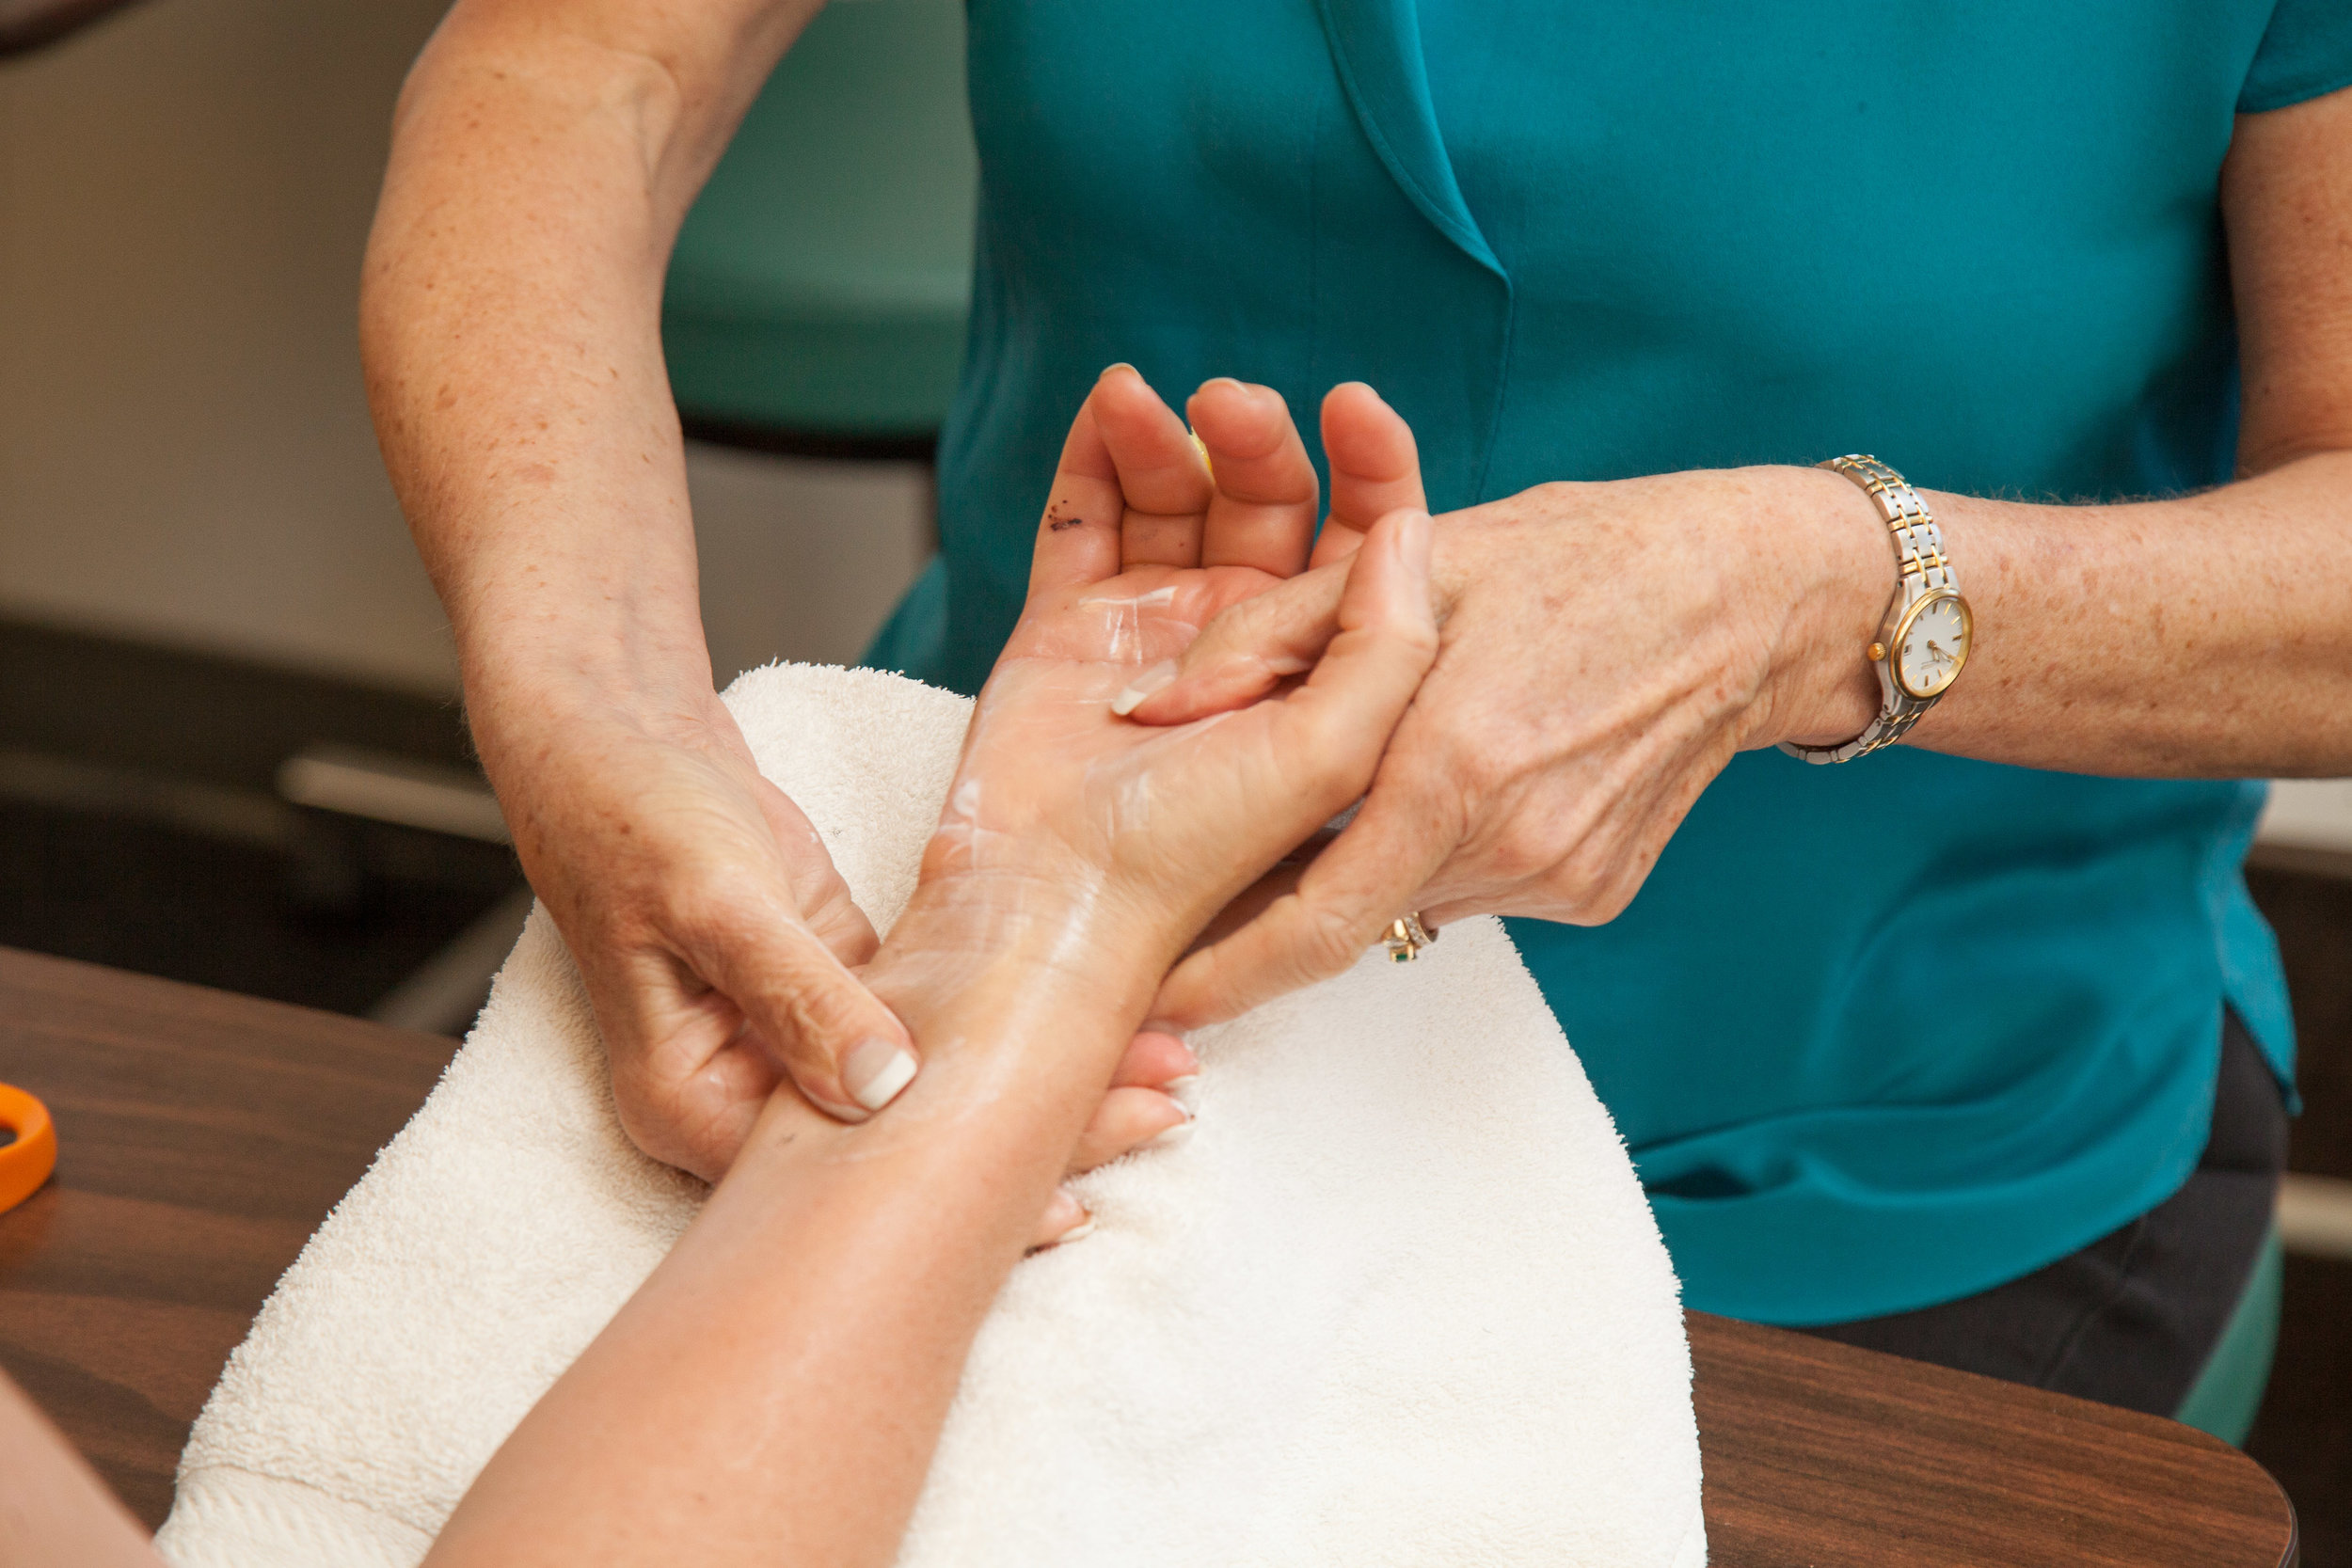 PROVIDING QUALITY CARE FOR OPTIMAL FUNCTION FOR SINCE 2001   We provide the highest quality rehabilitation services for all types of hand, wrist, elbow, and shoulder injuries.